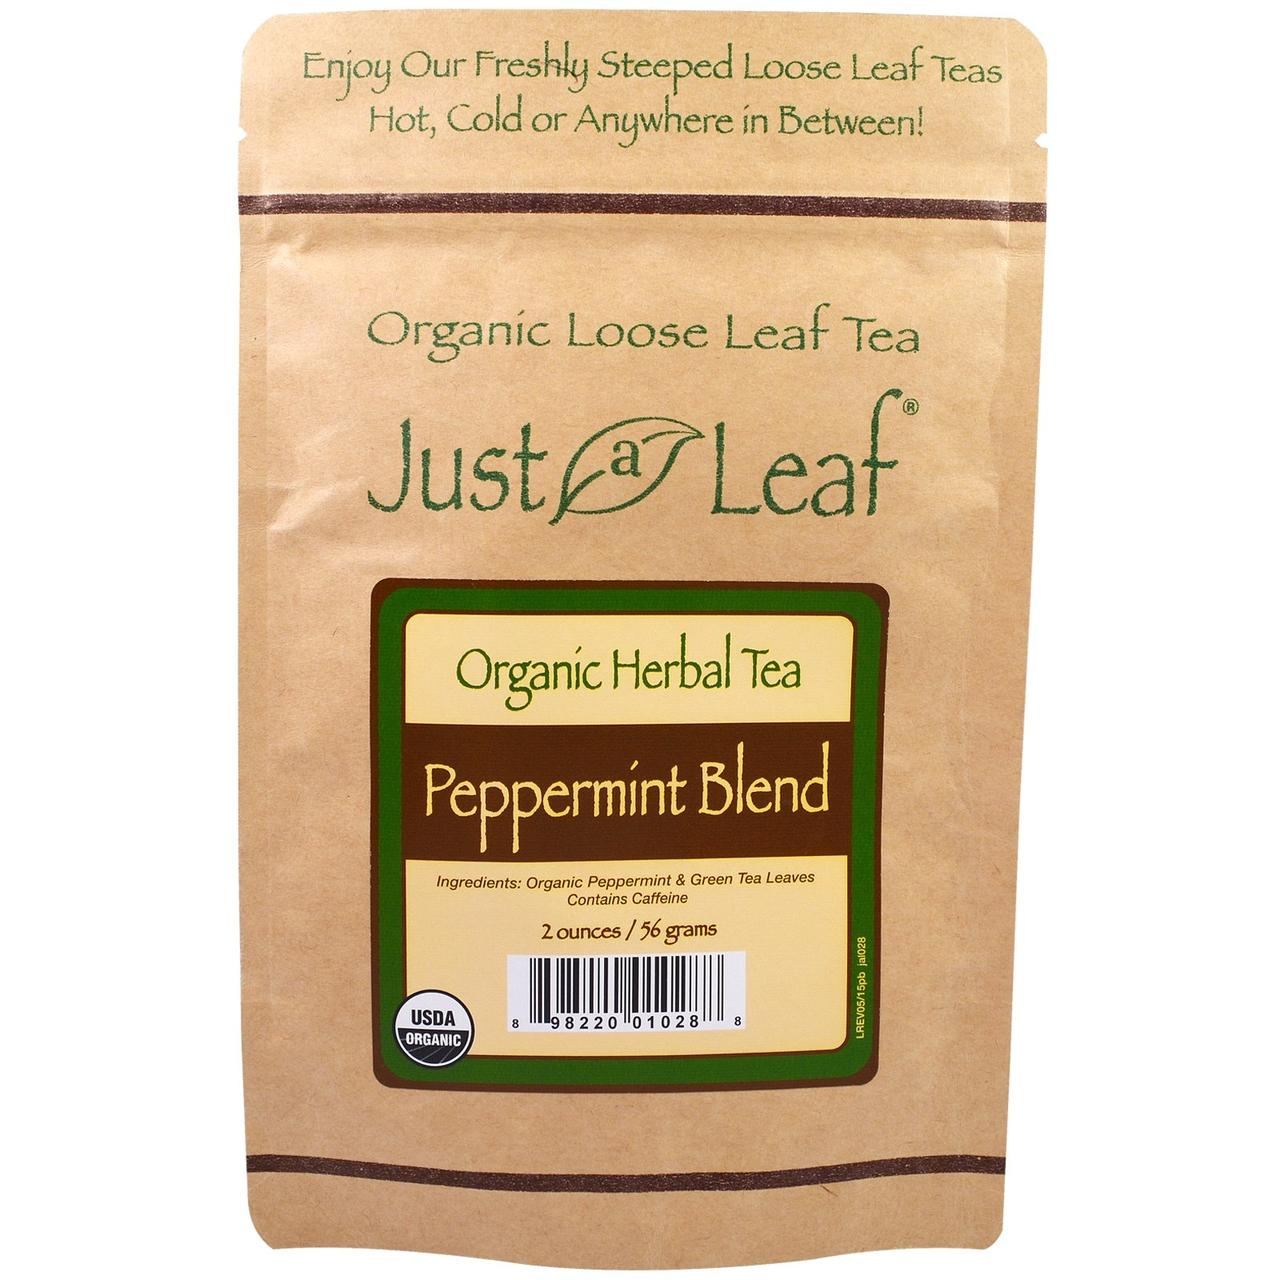 Just a Leaf Organic Tea, Peppermint Blend, Loose Leaf Tea, With Refreshing Green Tea Leaves, 100% Pure, No GMOs, 2 oz (56 g)